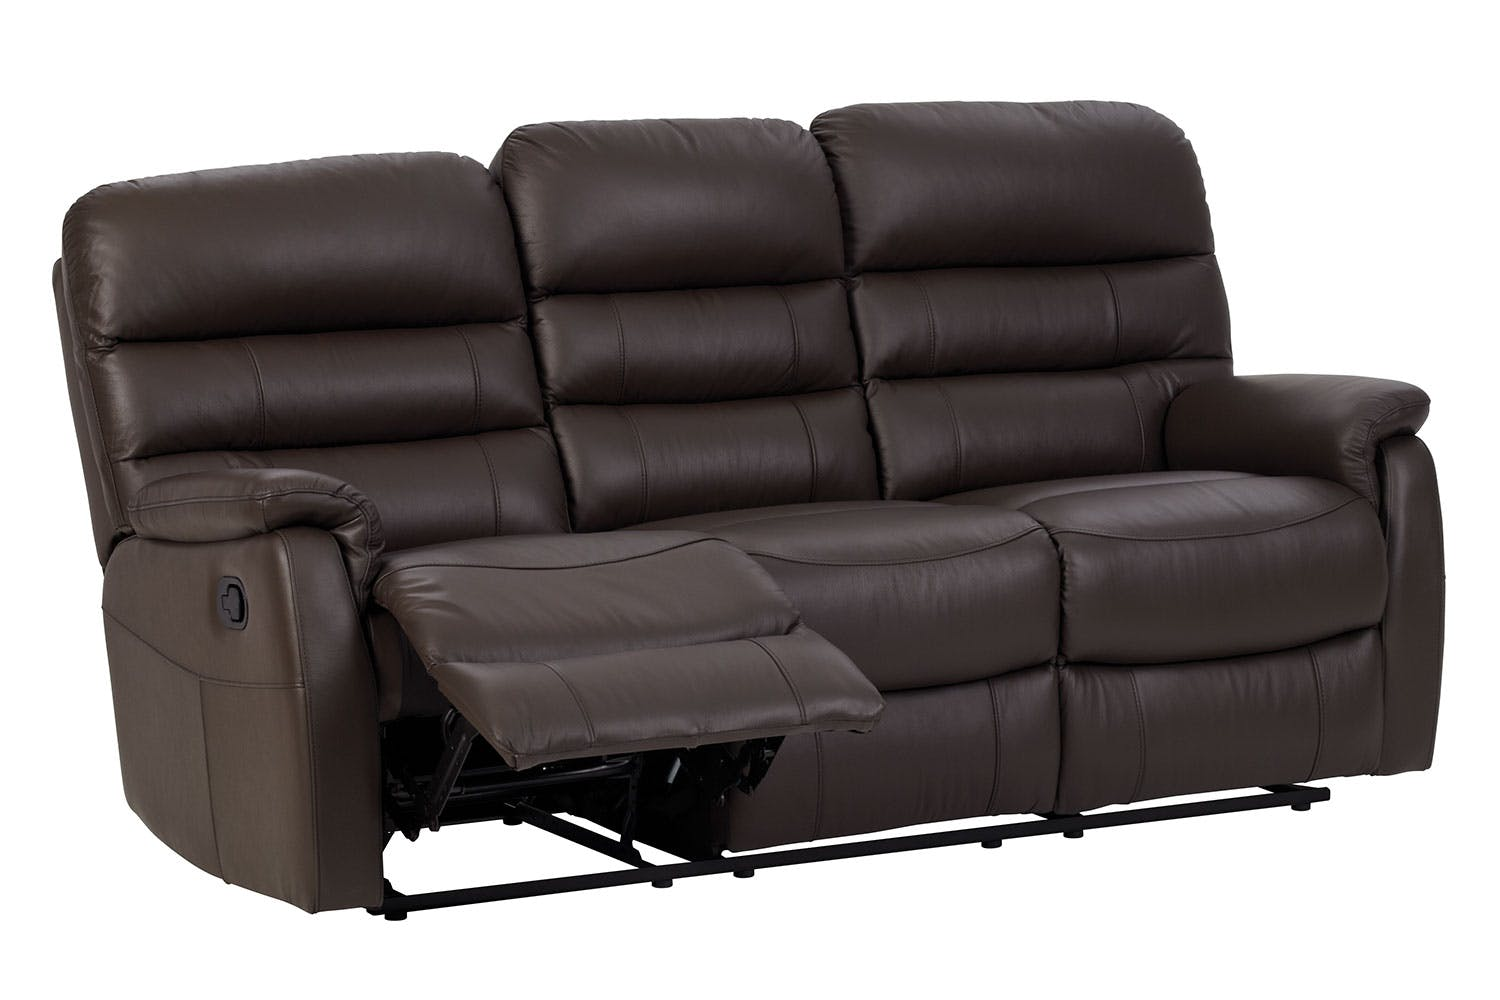 Luna 3 Seater Leather Recliner Sofa By Vivin Harvey